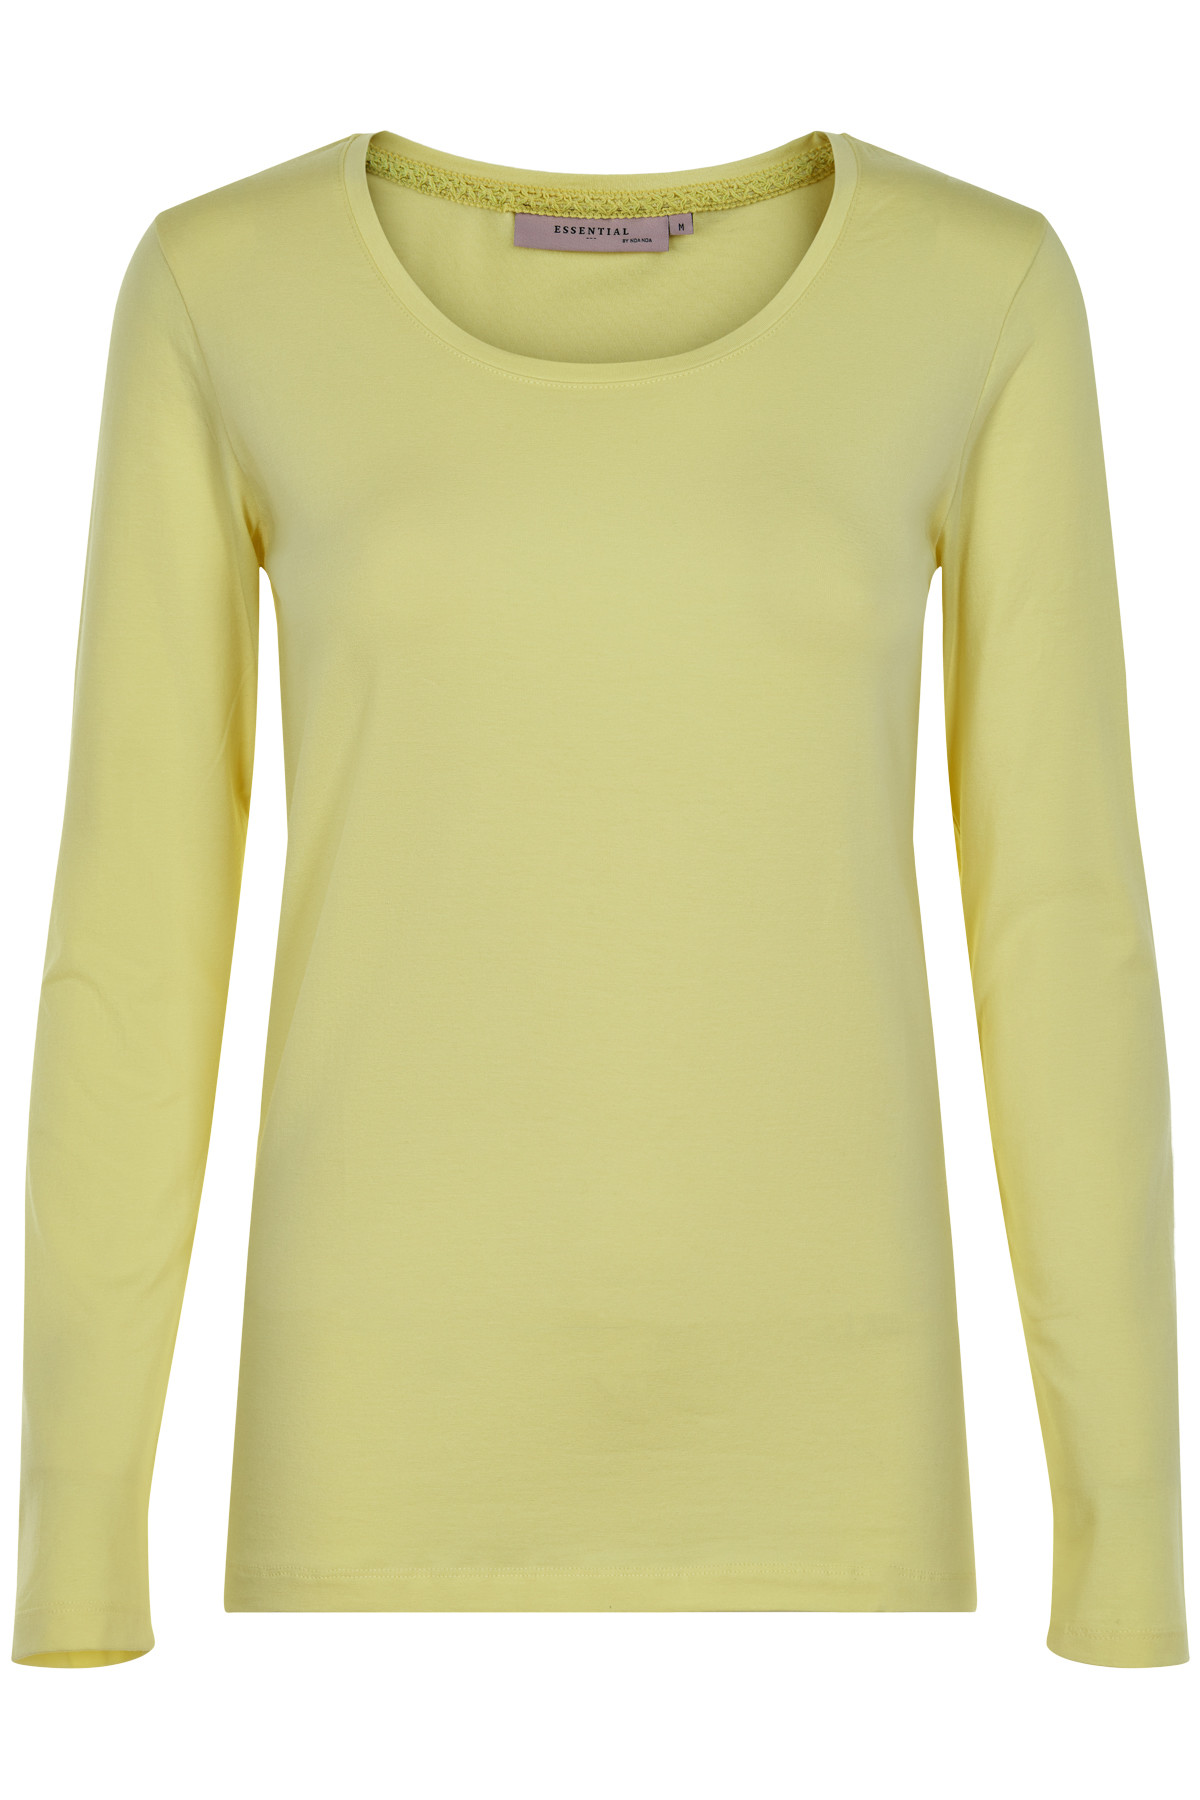 NOA NOA T-SHIRT 1-5270-19 01053 (Yellow, M)